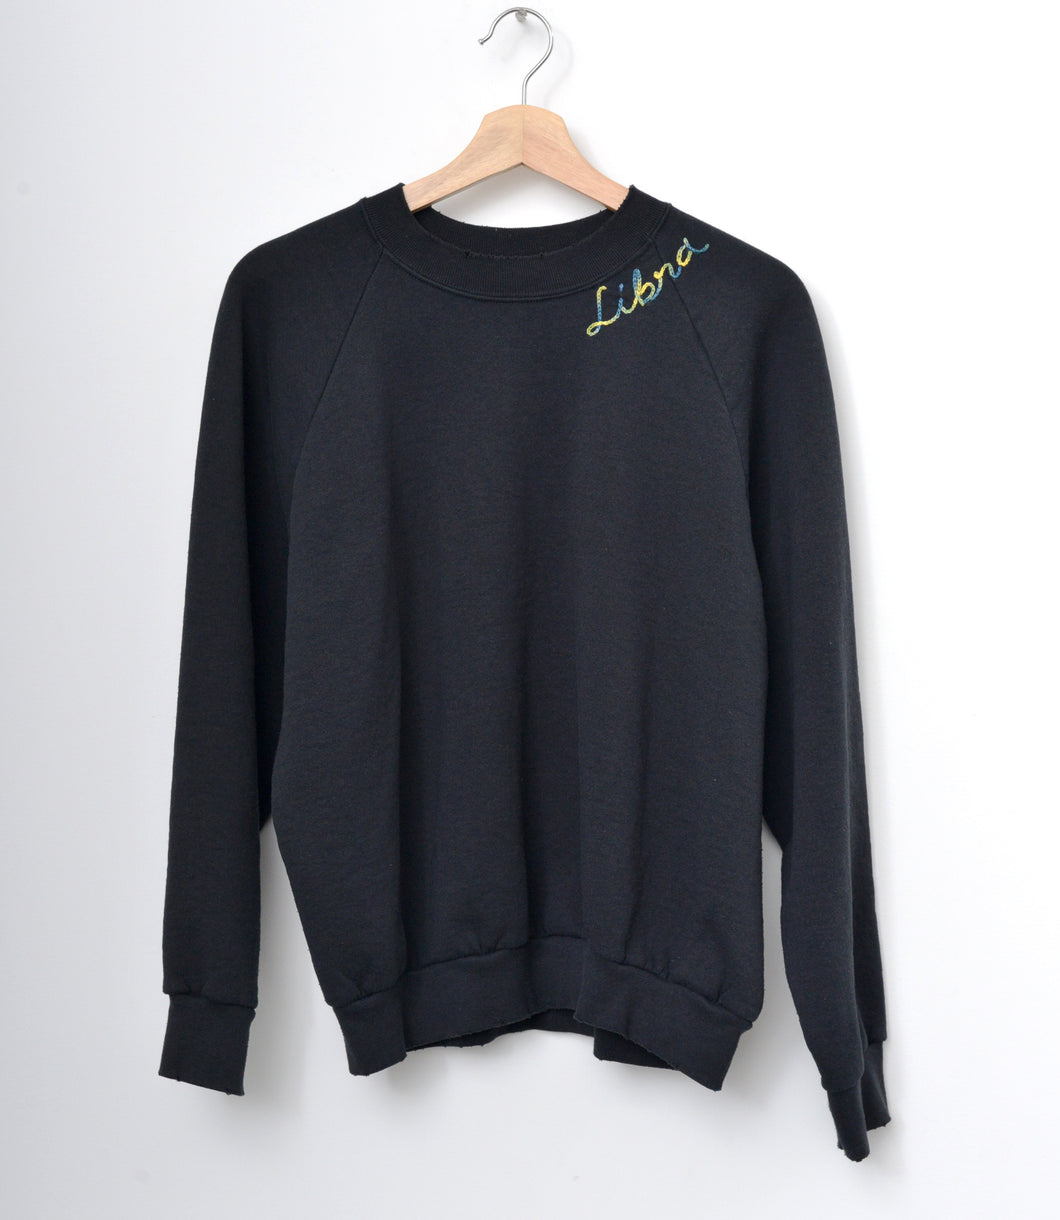 Horoscope Sweatshirt - Libra